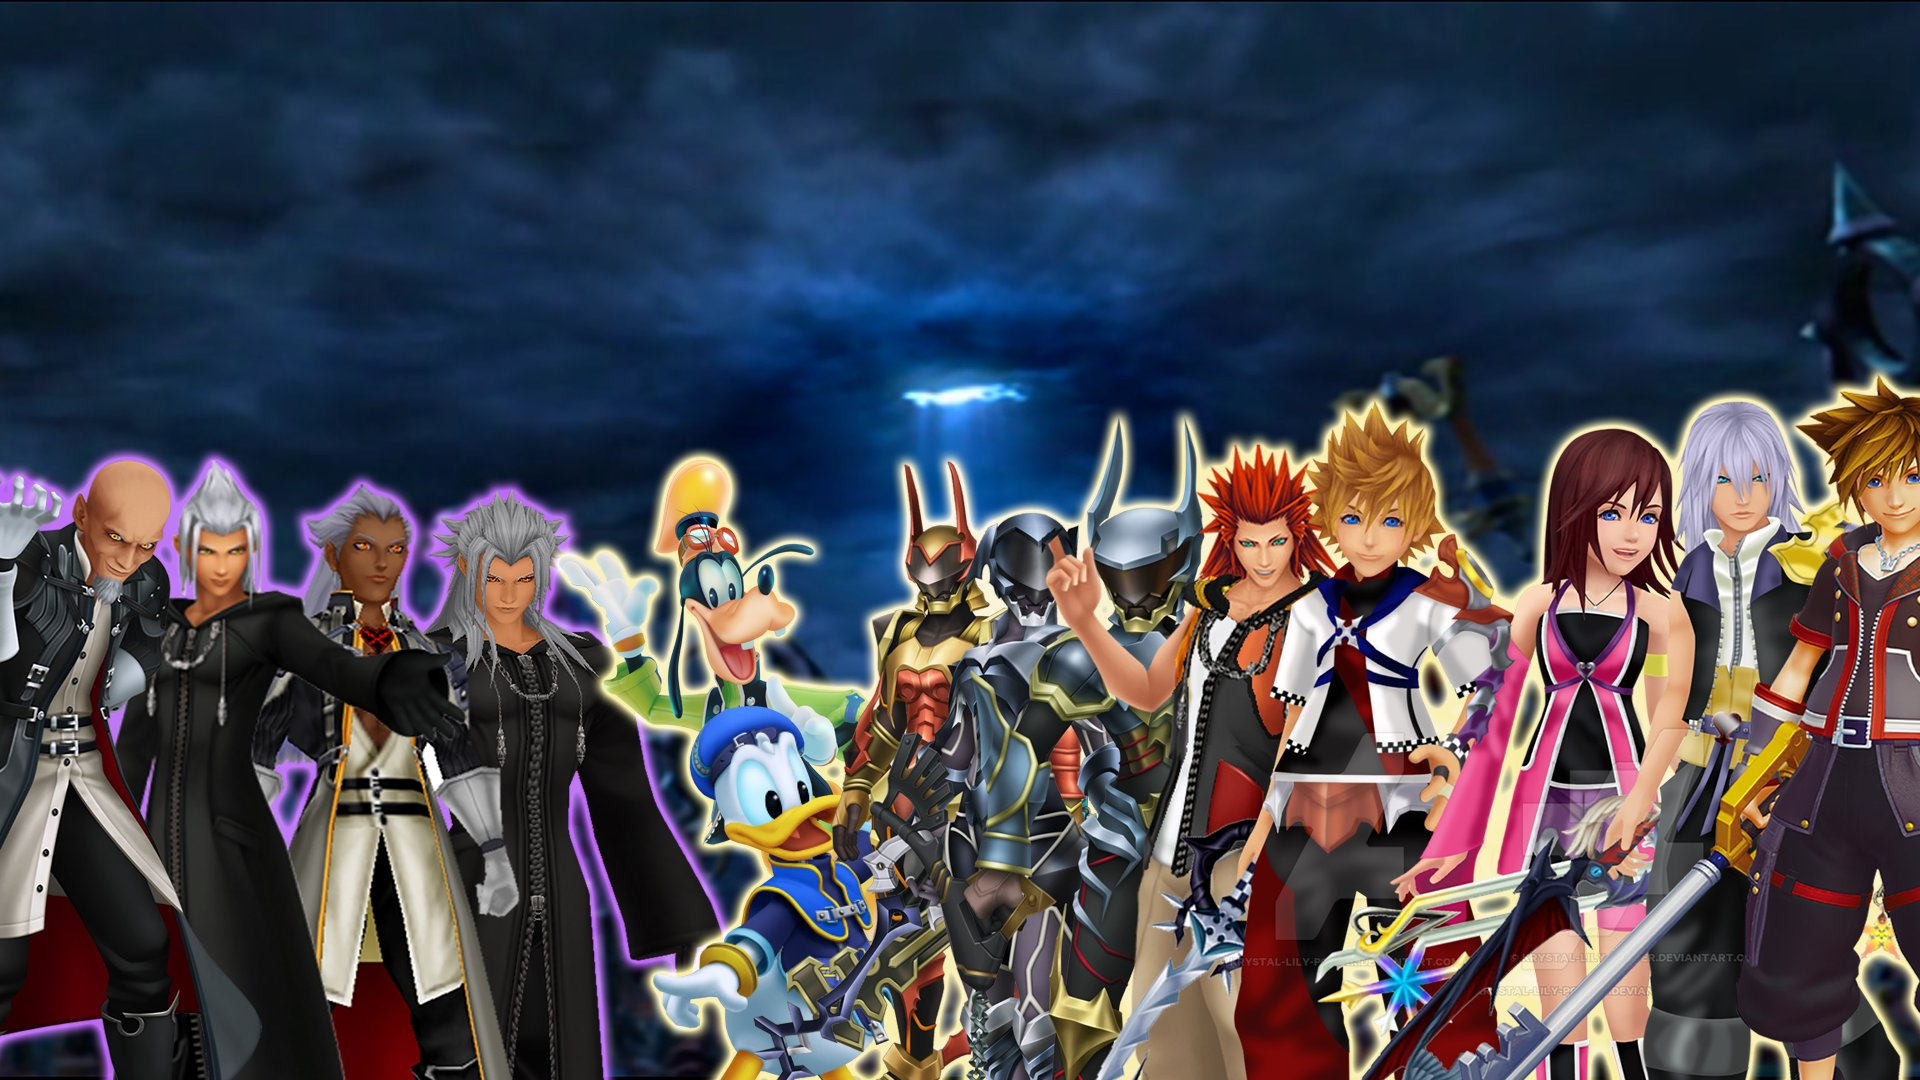 Kingdom Hearts 3 Wallpaper Concept by NecroMalice02 on ...